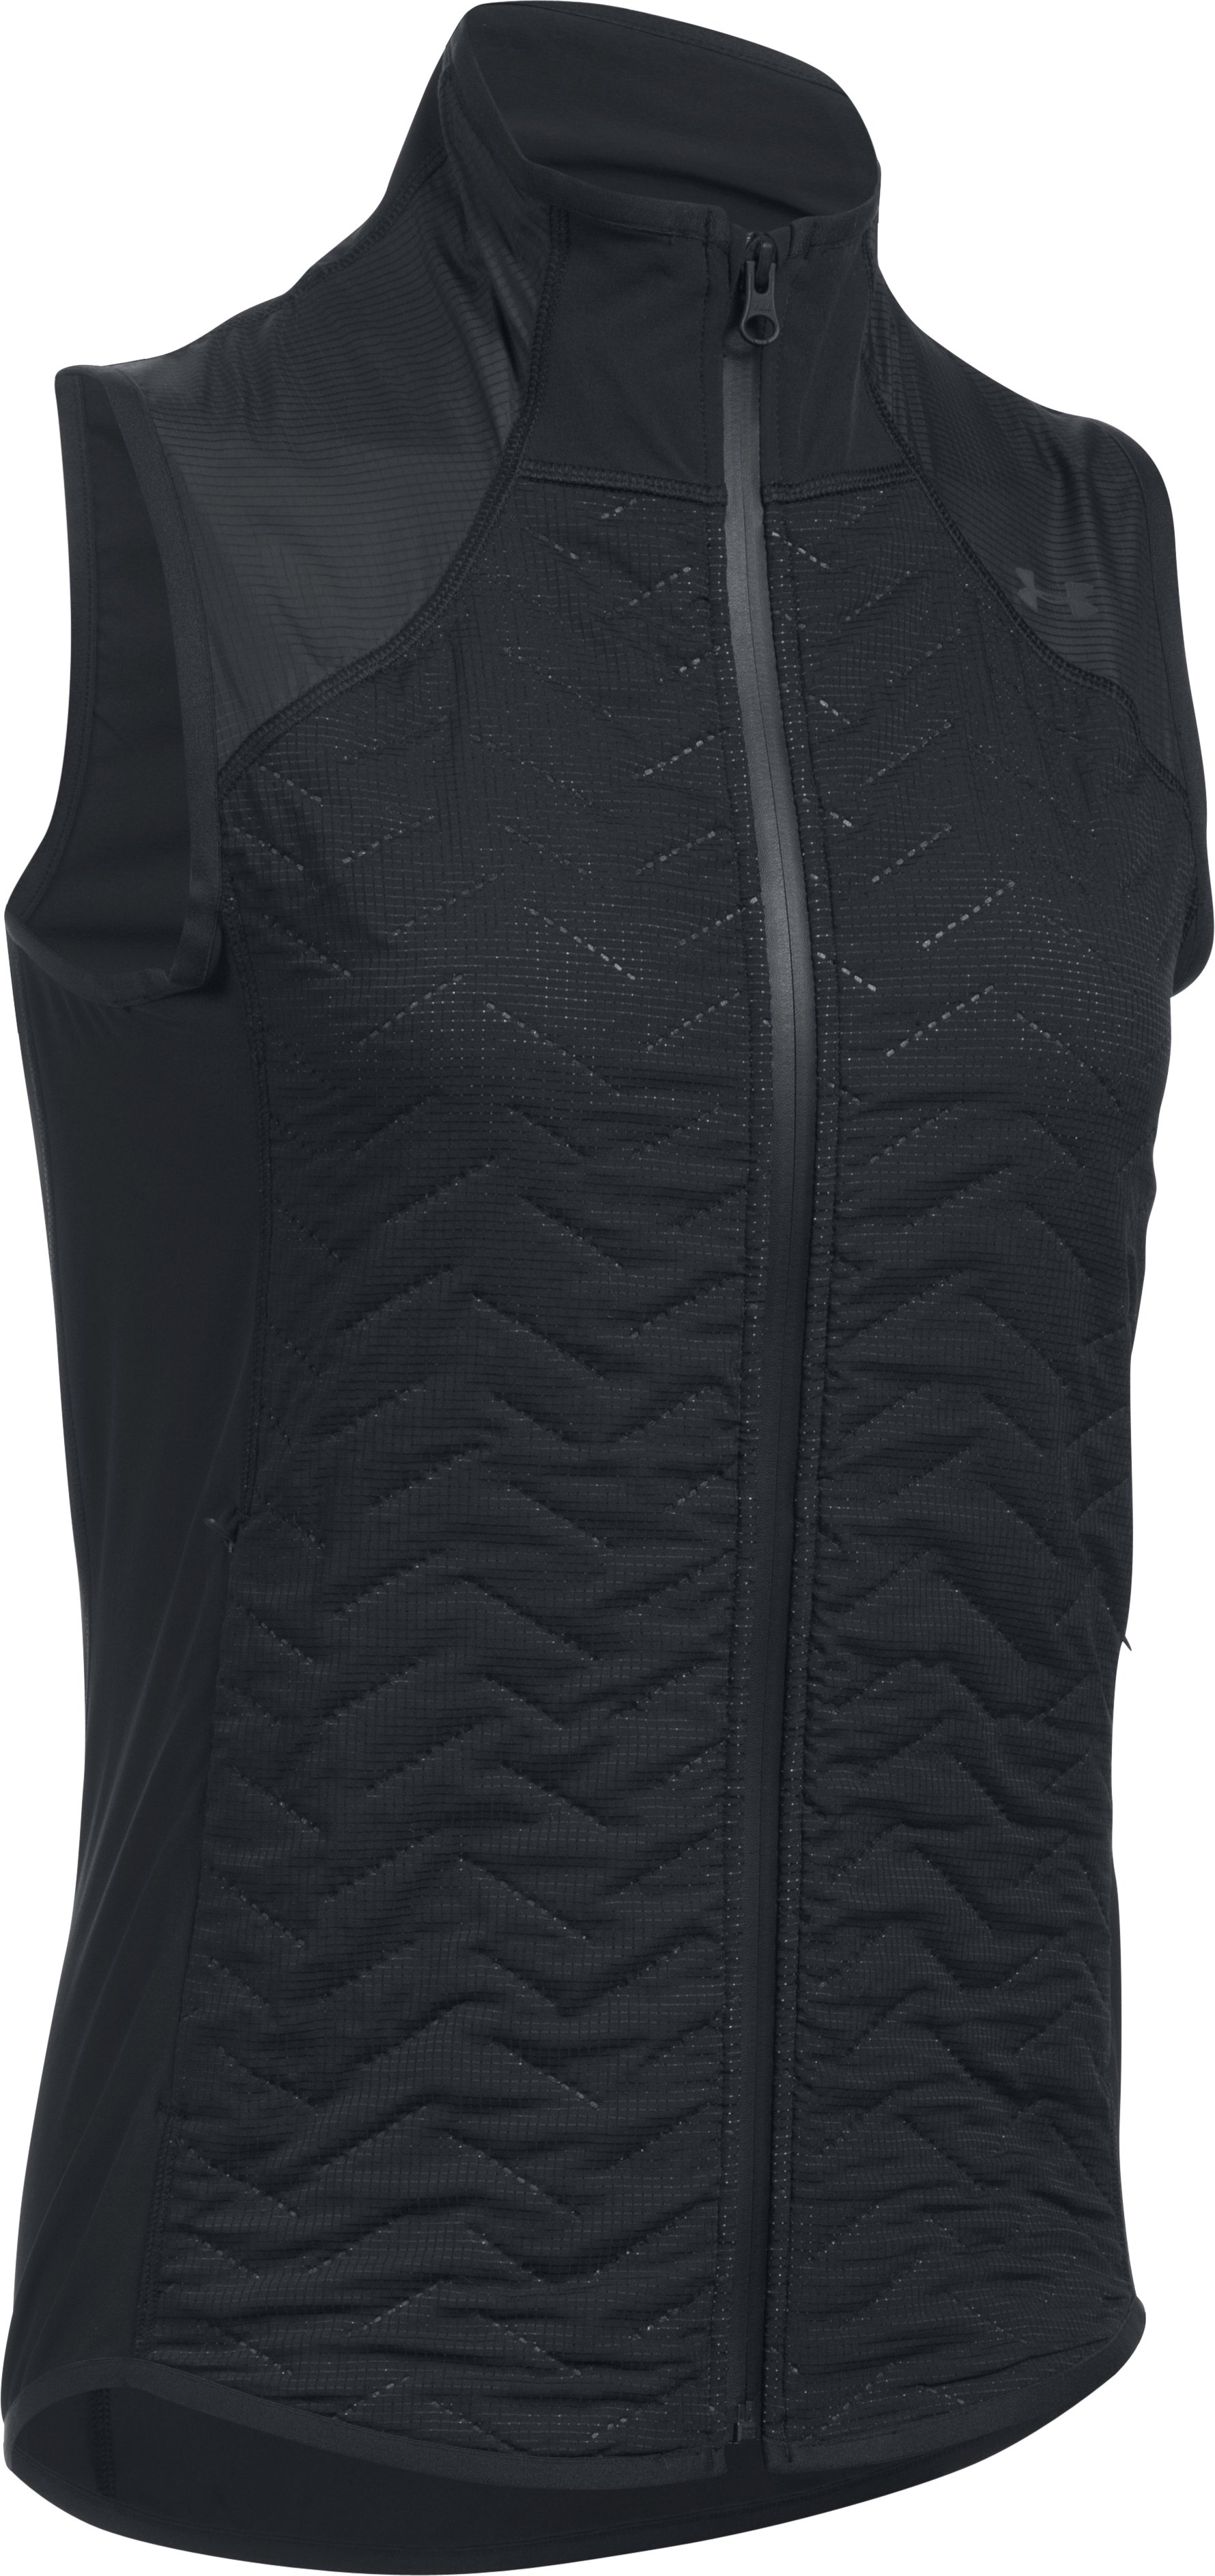 Women's ColdGear® Reactor Fleece Vest, Black ,